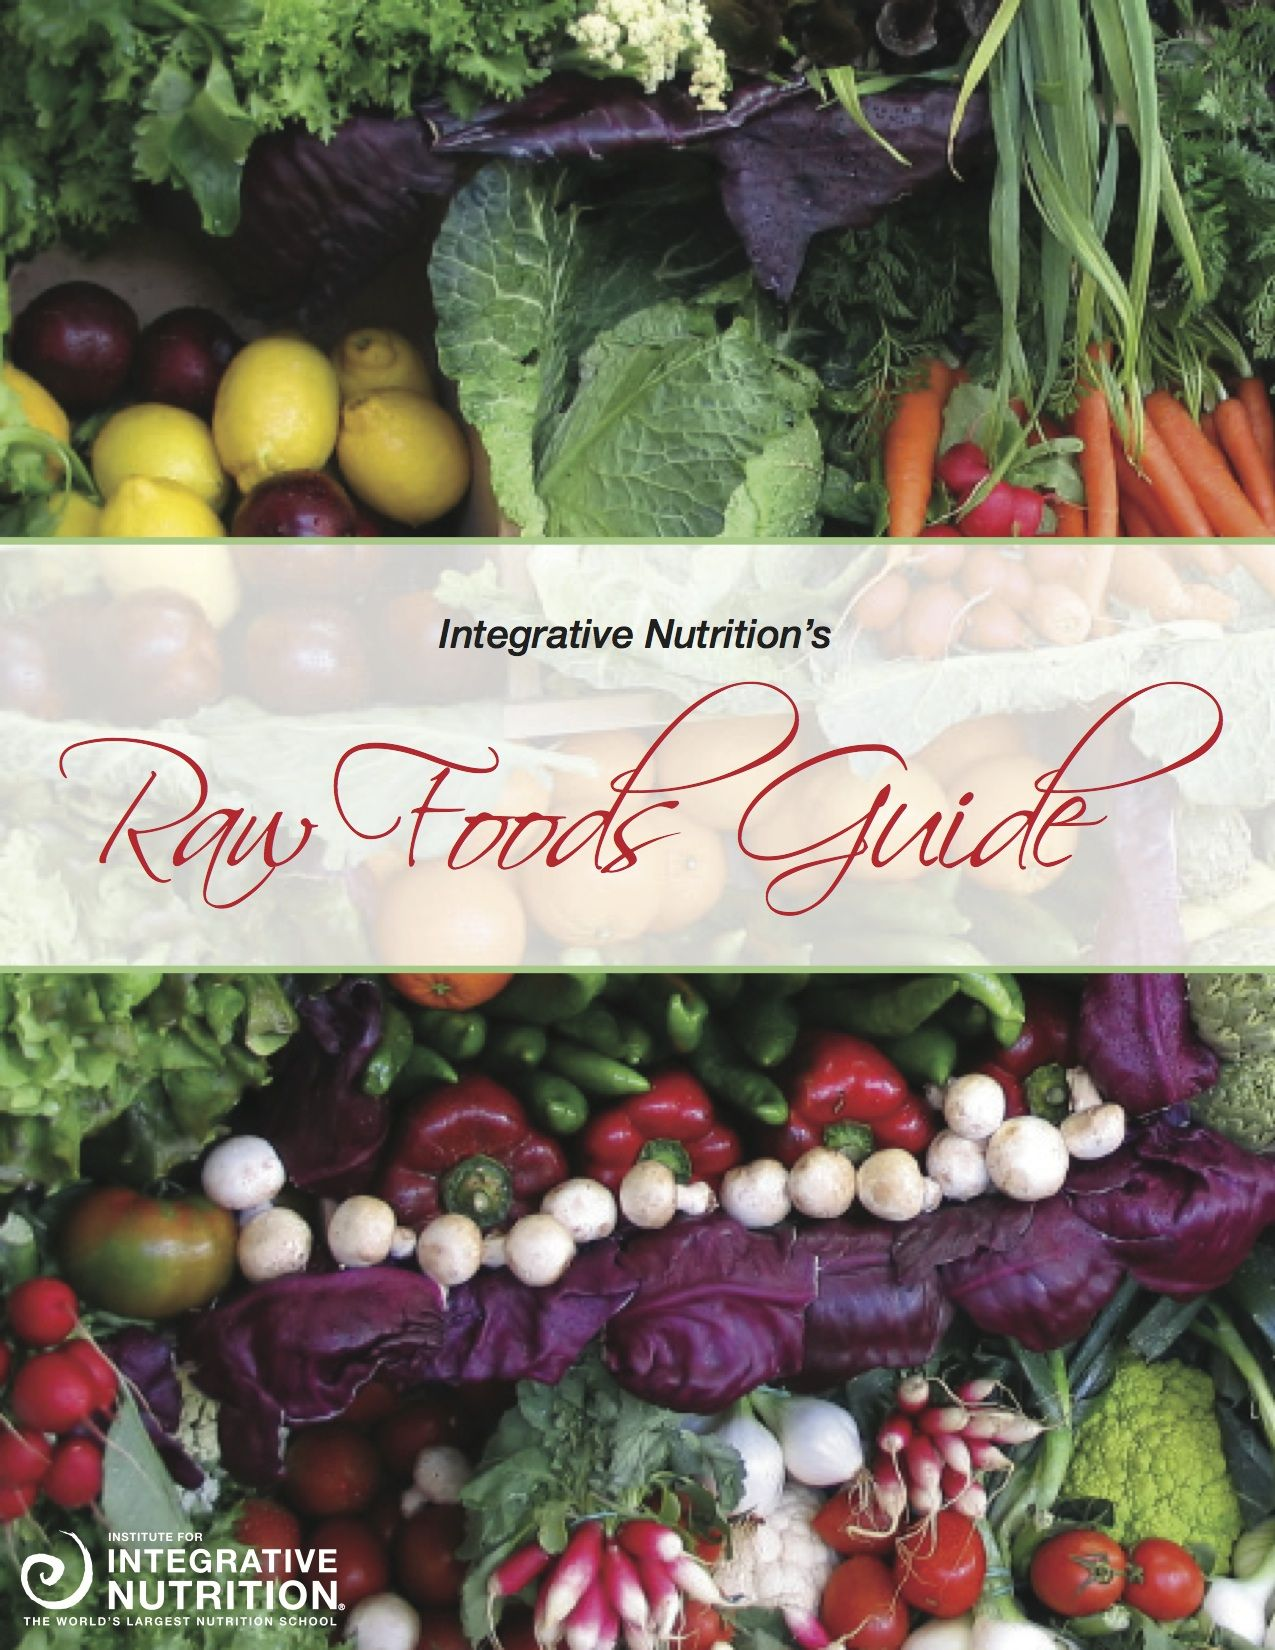 Stay cool this summer with raw foods institute for integrative institute for integrative nutrition has a great free raw food guide you should check out forumfinder Choice Image